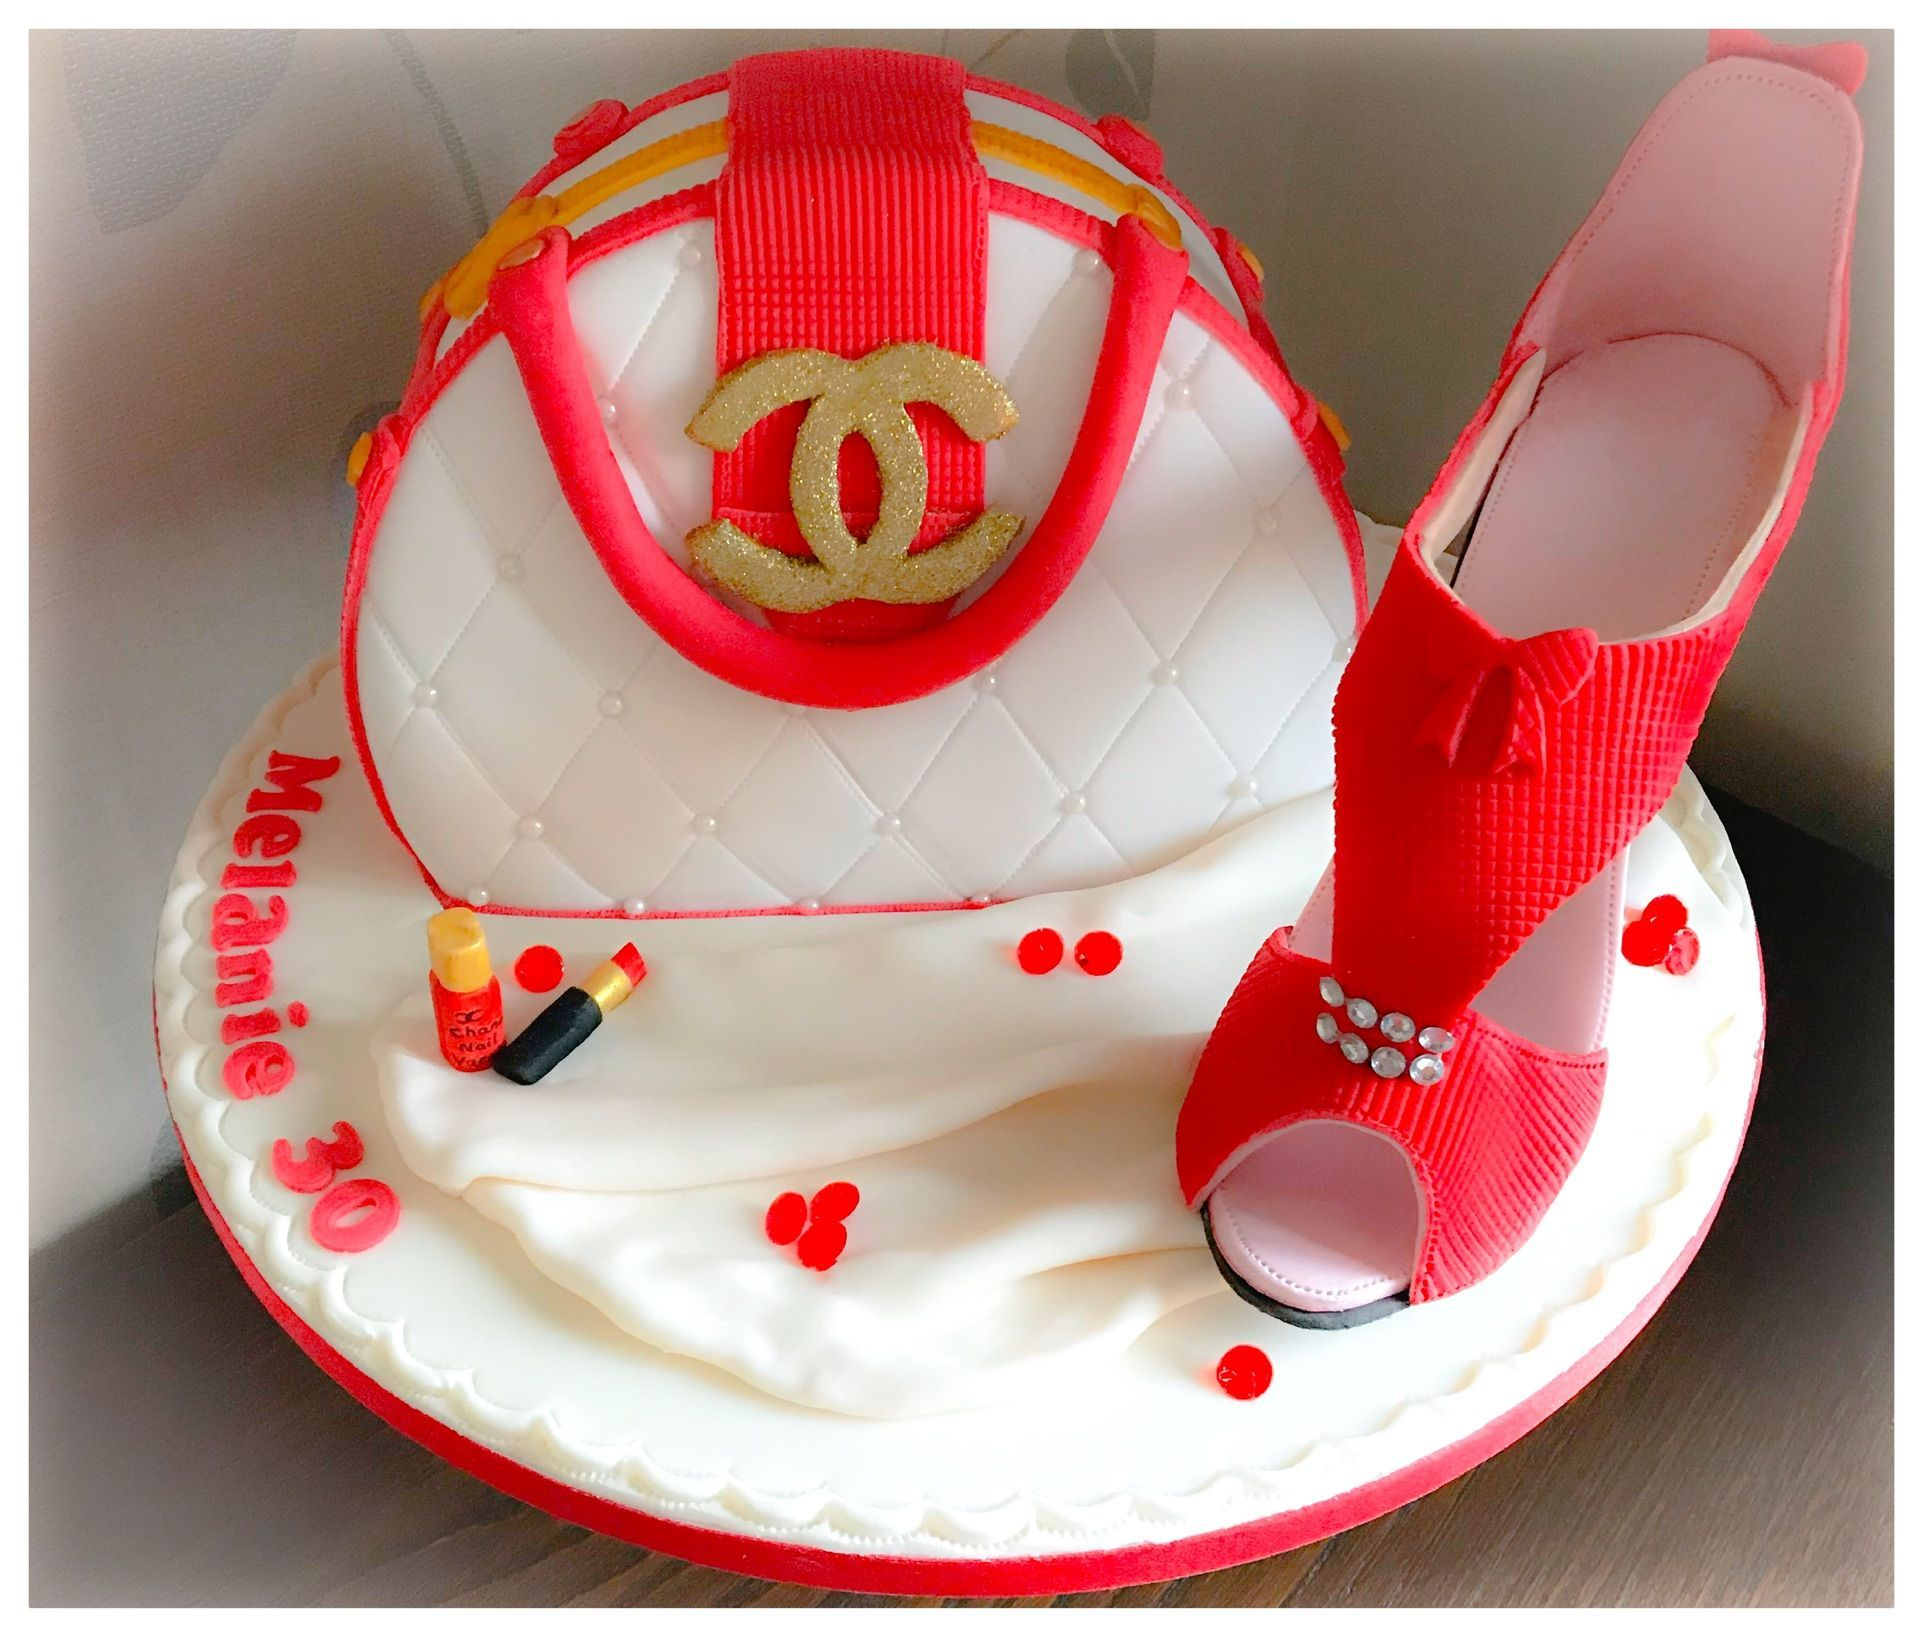 chanel handbag and shoe cake 3